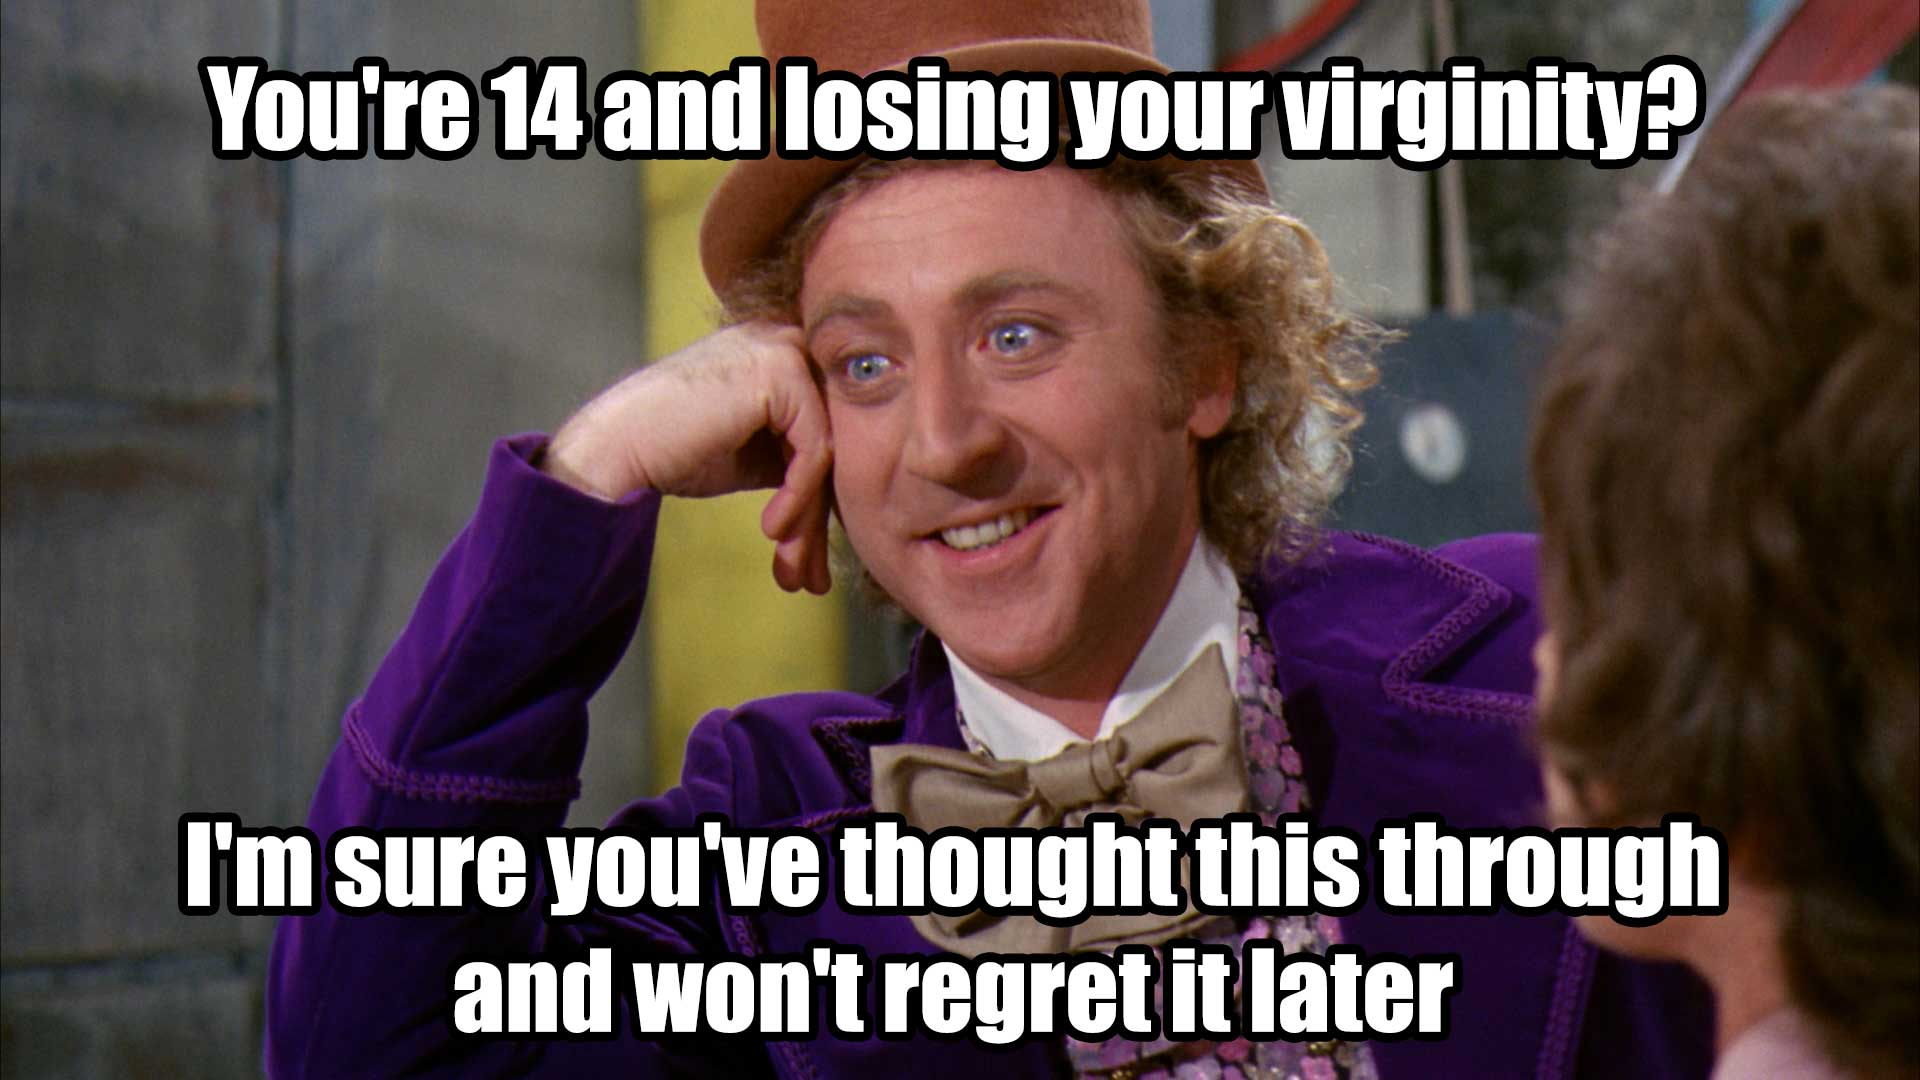 True accounts of losing virginity